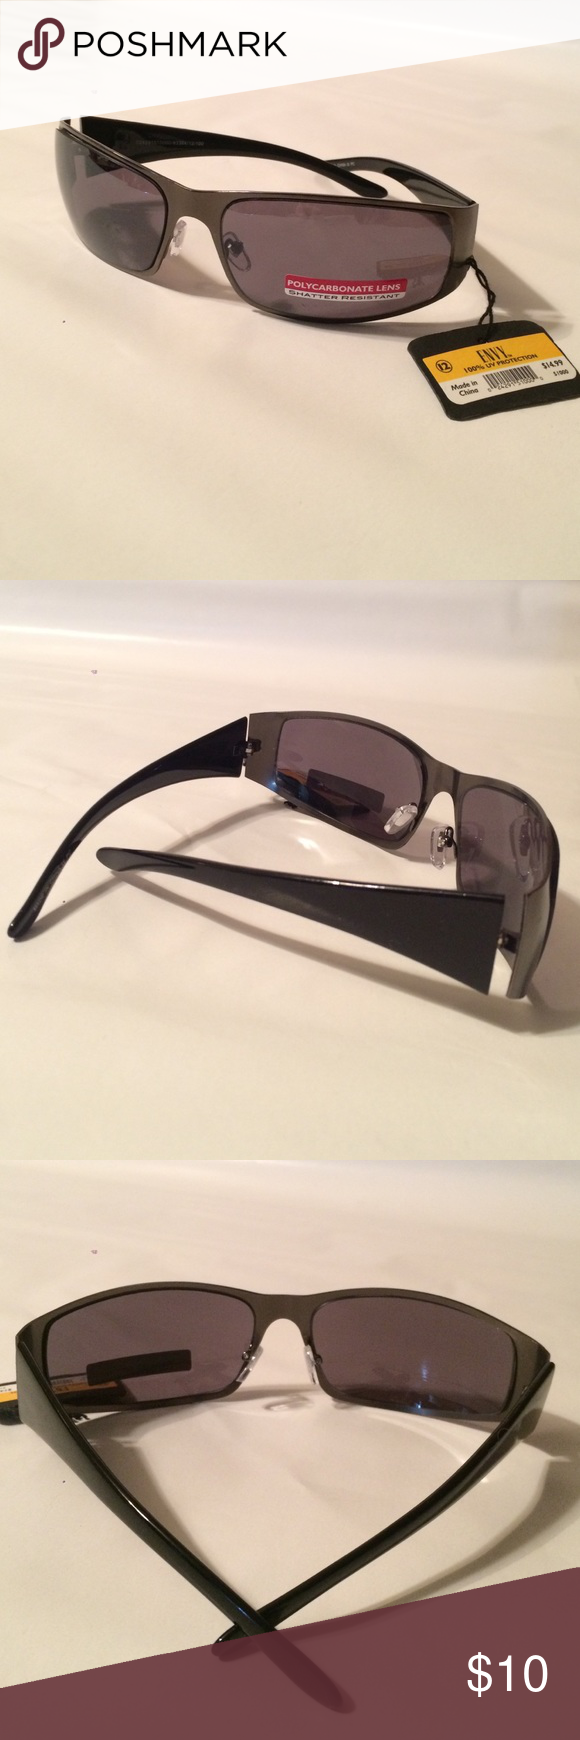 Envy Sunglasses NEW Men's Envy men's sunglasses - NWT - Polycarbonate Lens / Shatter resistant - 100% UV protection. THANKS FOR LOOKING! I do take offers! SAVE ON SHIPPING & bundle 💝 Envy Accessories Glasses